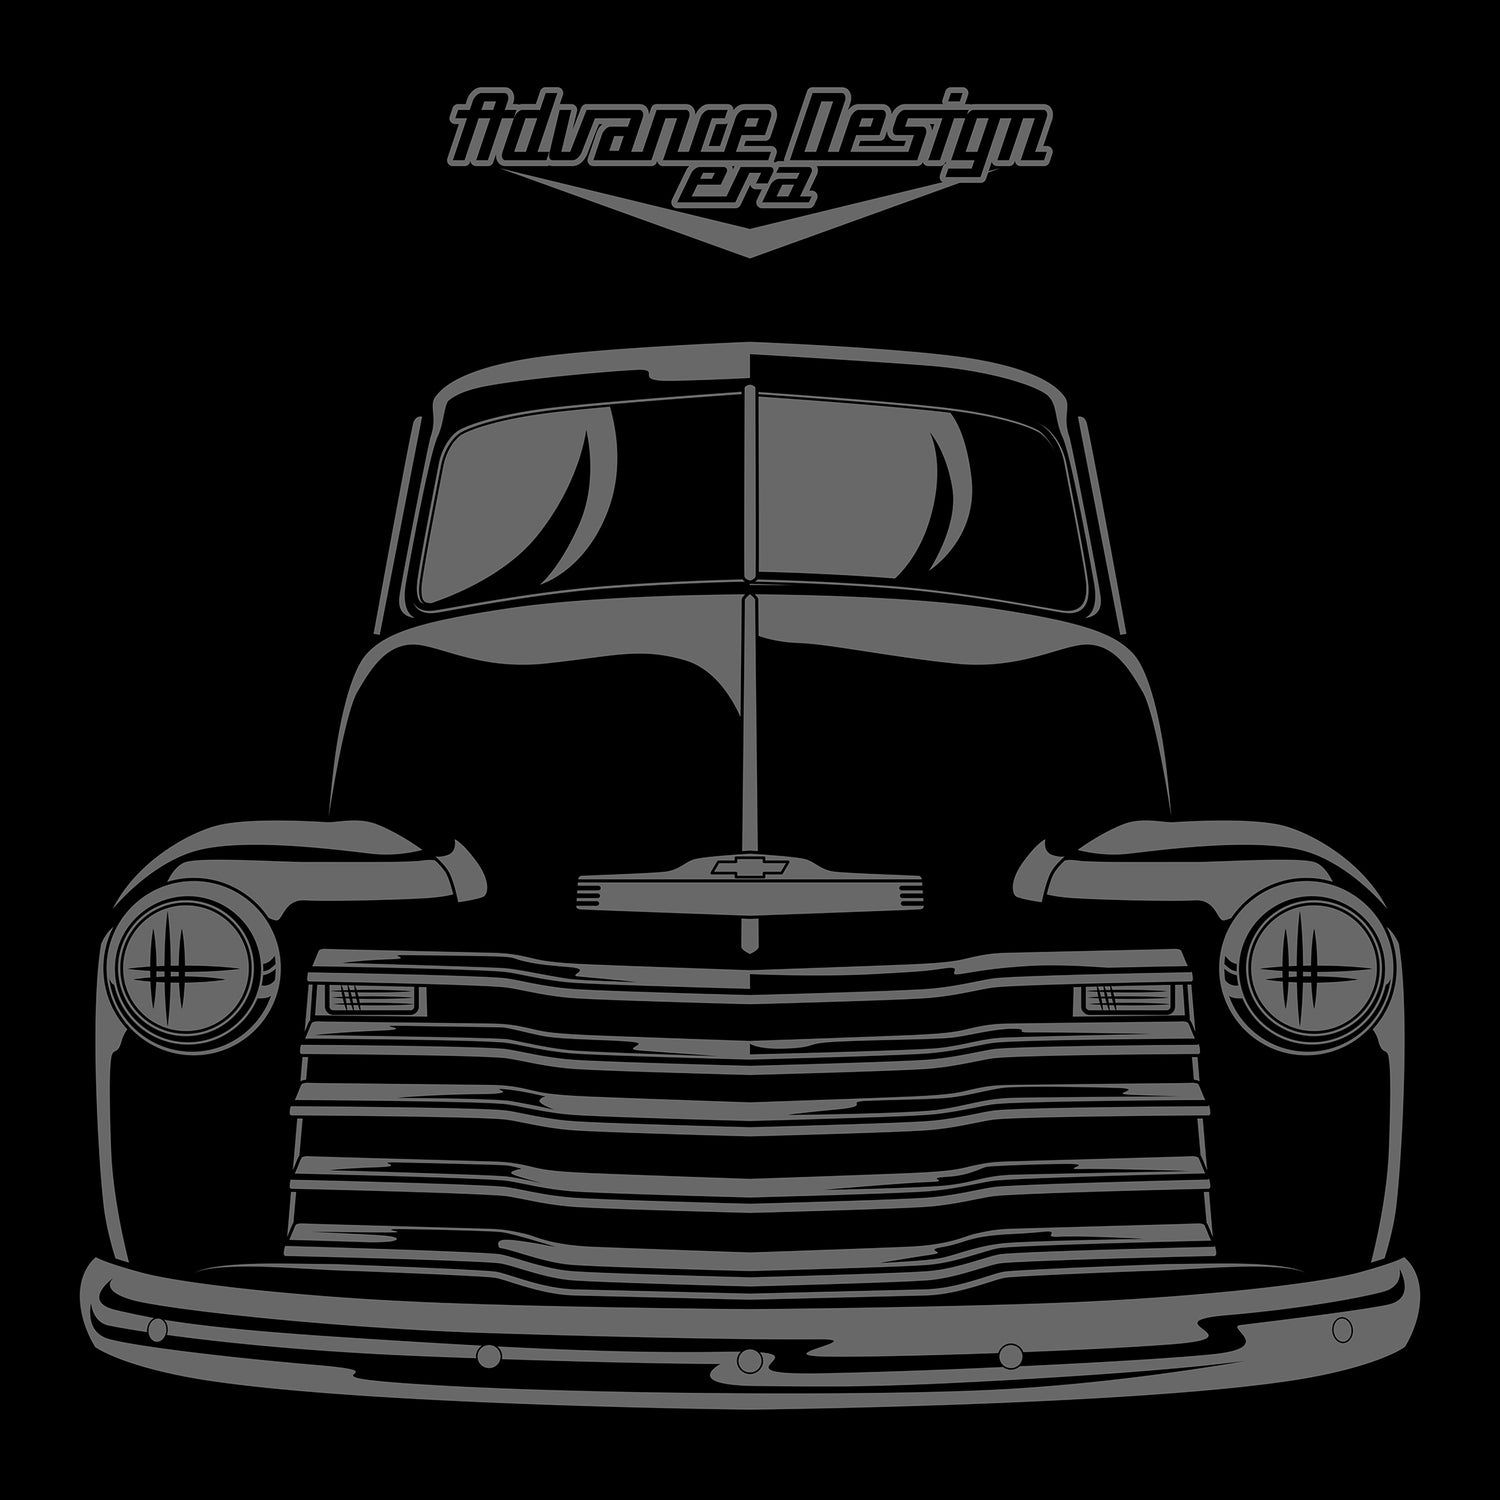 Task Force Era Home In 2020 Truck Shirts Car Silhouette Print Decals